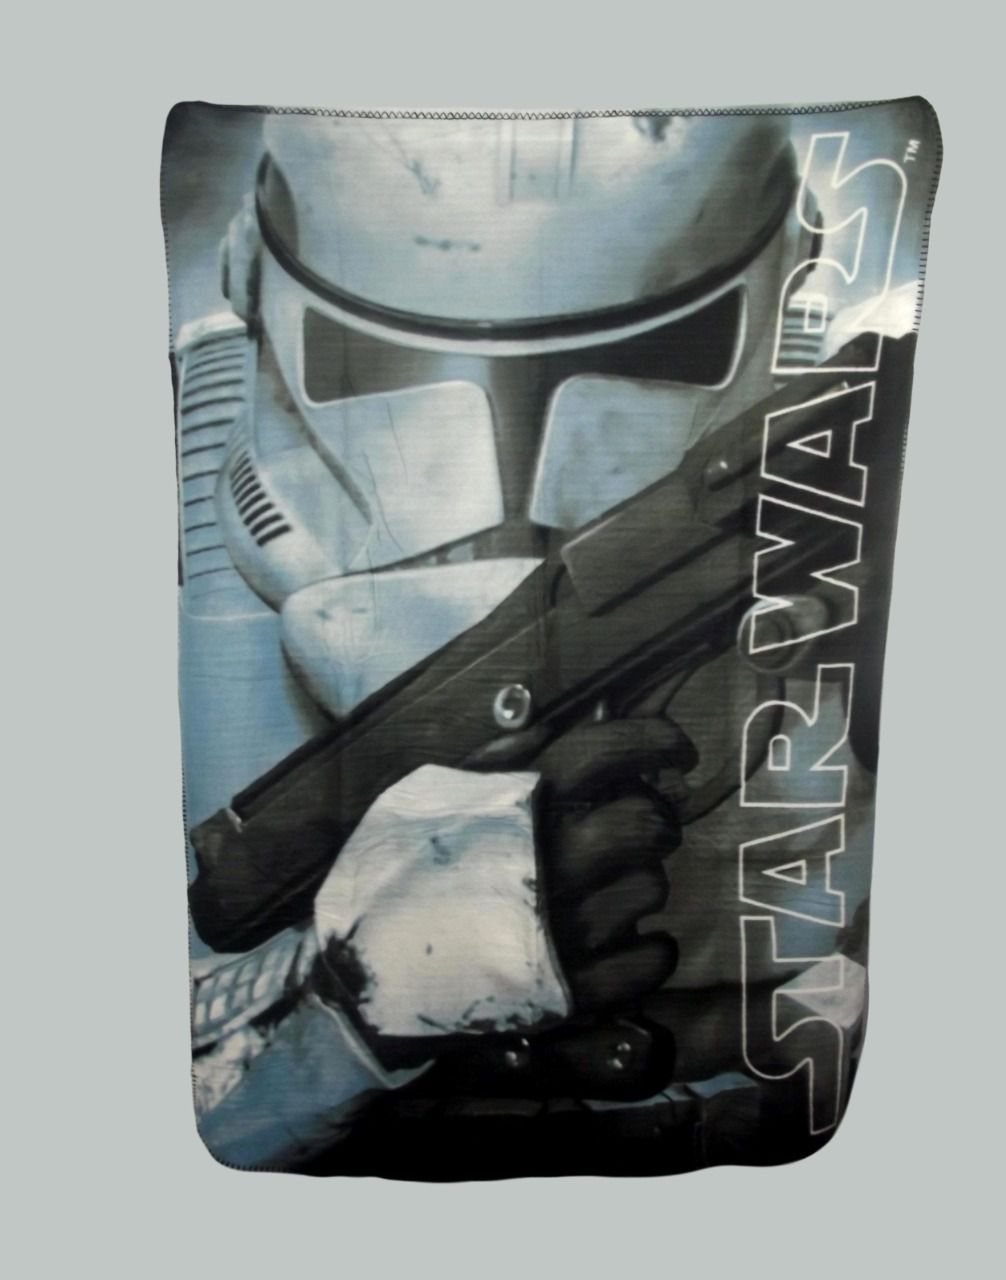 Plaid polaire enfant Stormtrooper de Star Wars - 140X100CM - Gris 100% Polyester